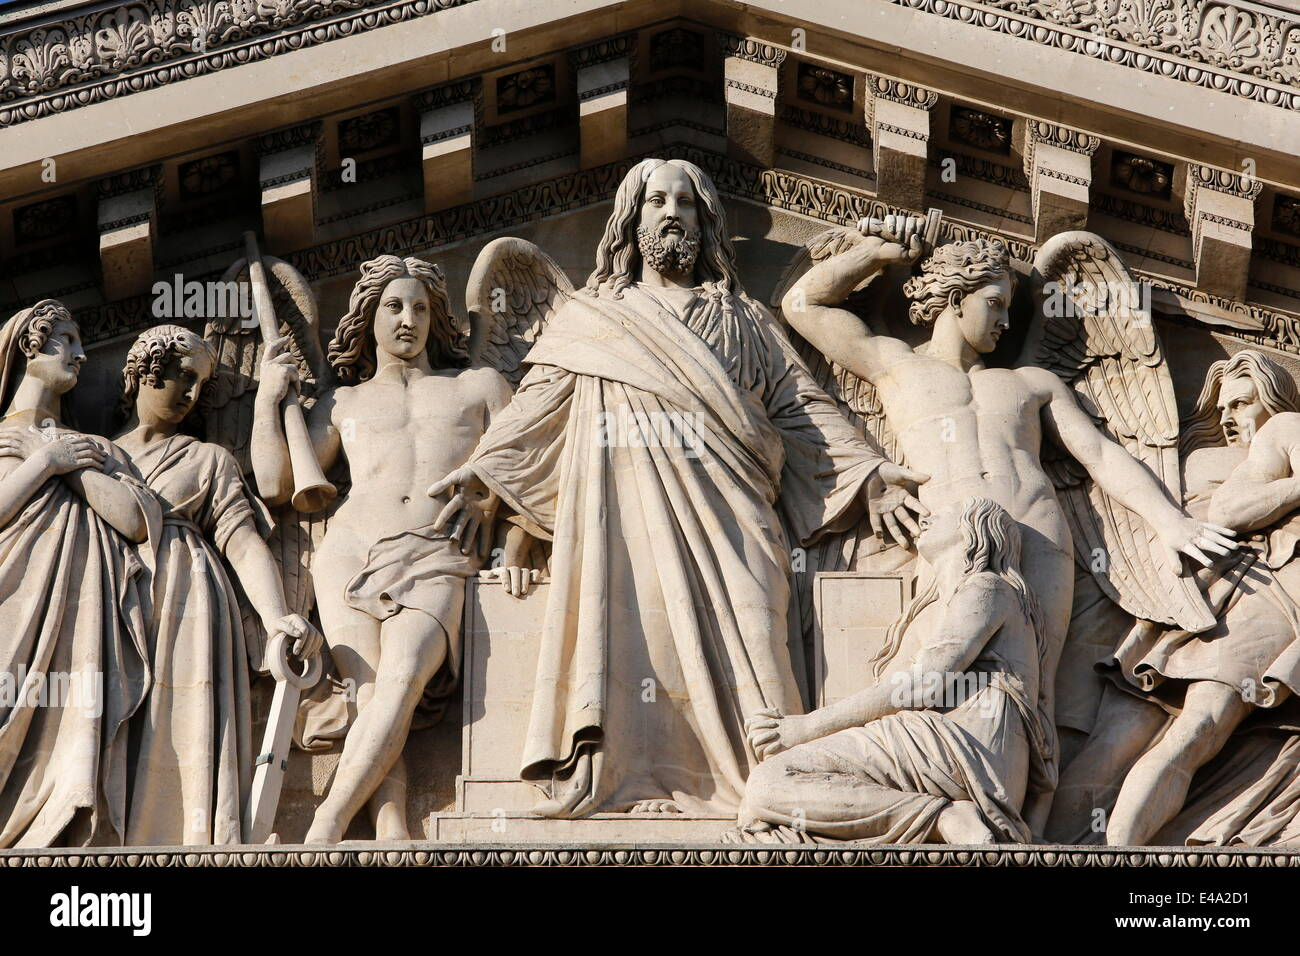 Detail of the Final Judgment, La Madeleine Catholic church pediment, Paris. France, Europe - Stock Image